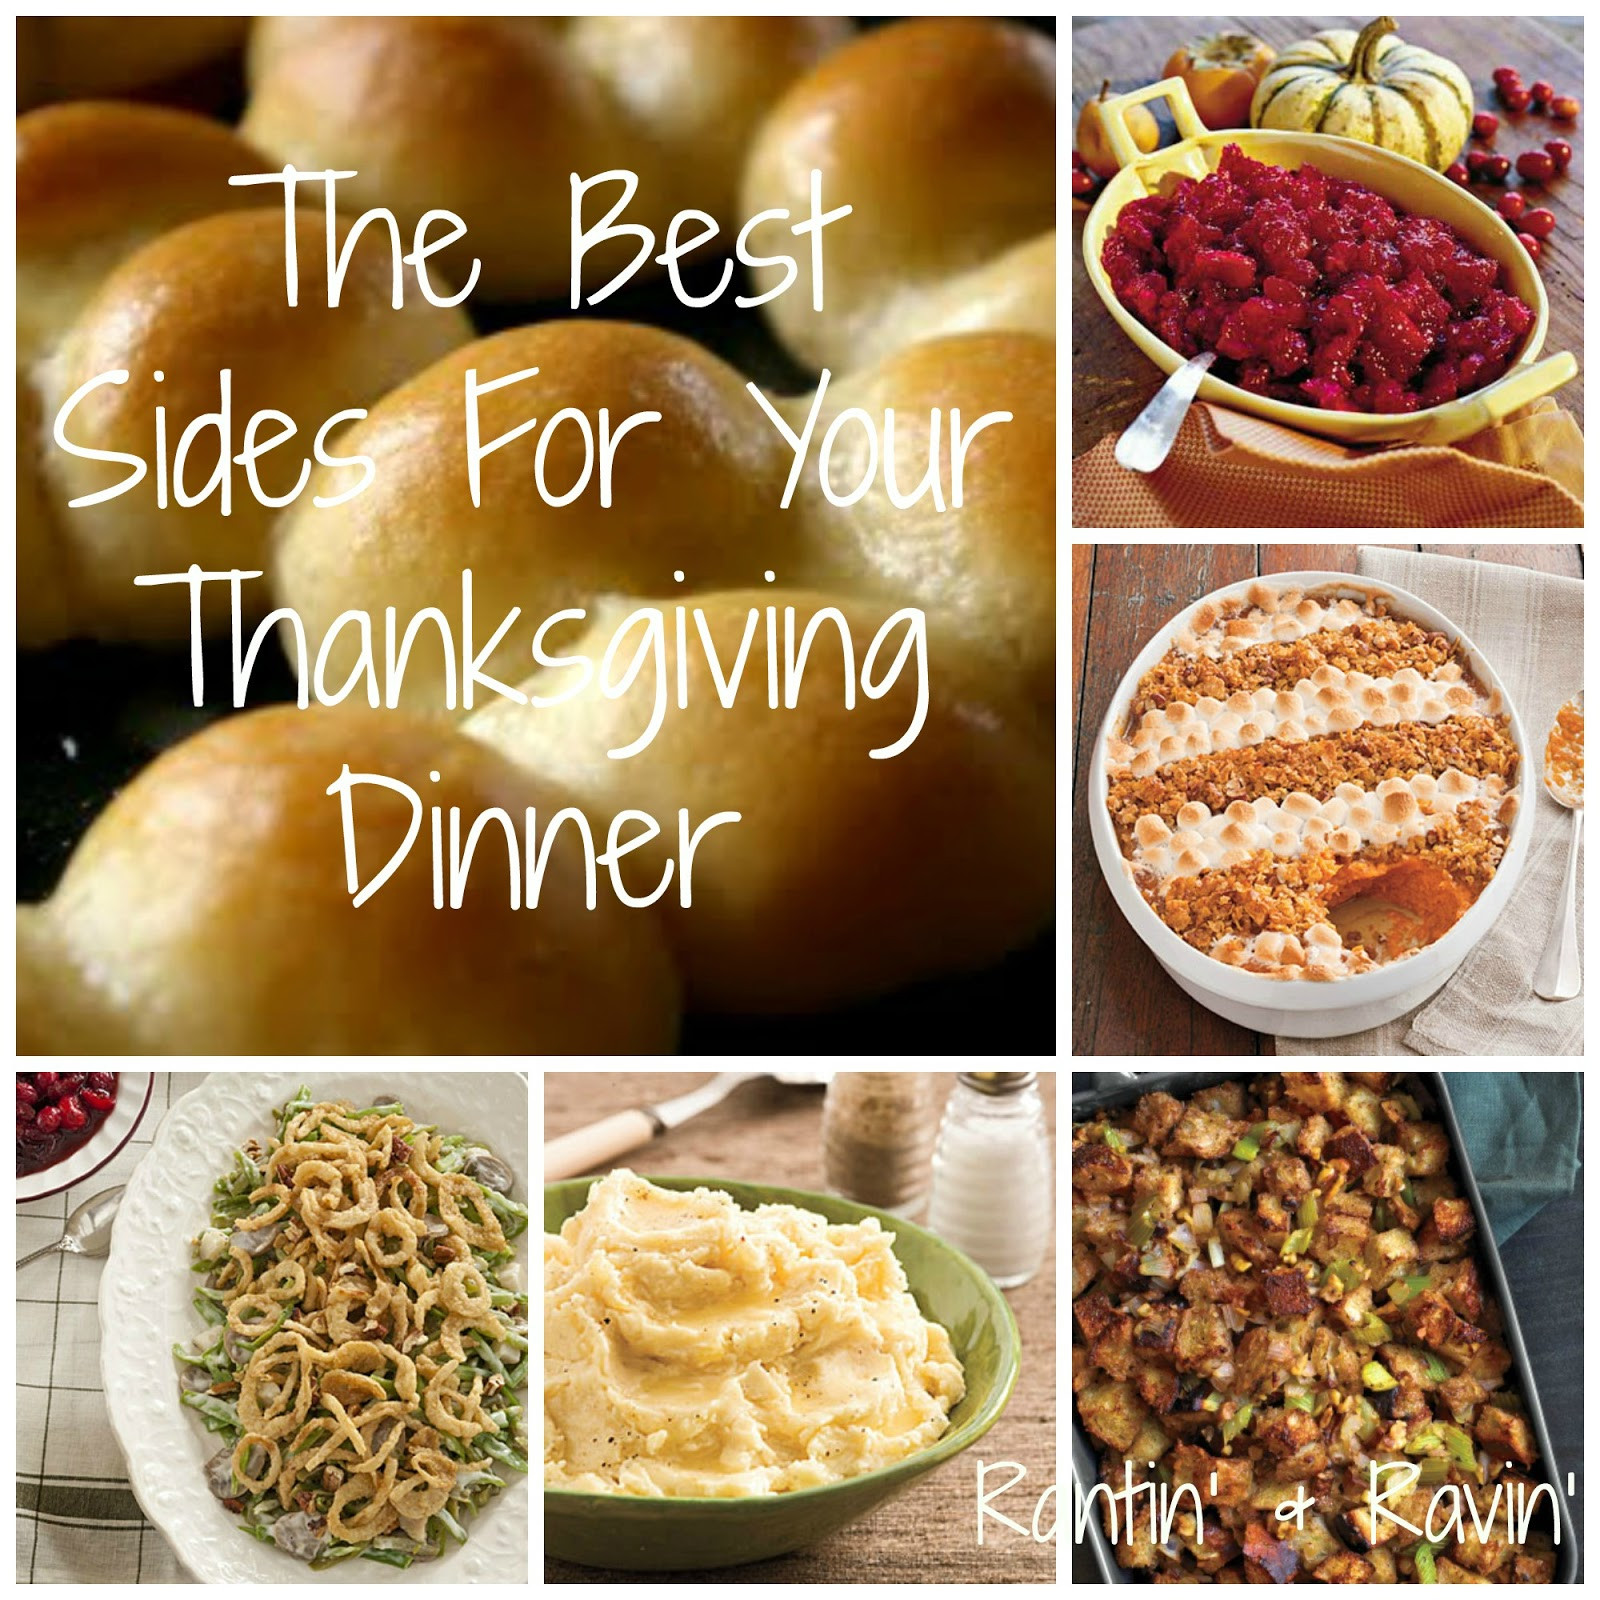 Side Dishes For Thanksgiving Turkey Dinner  Rantin & Ravin THE BEST SIDES FOR YOUR THANKSGIVING